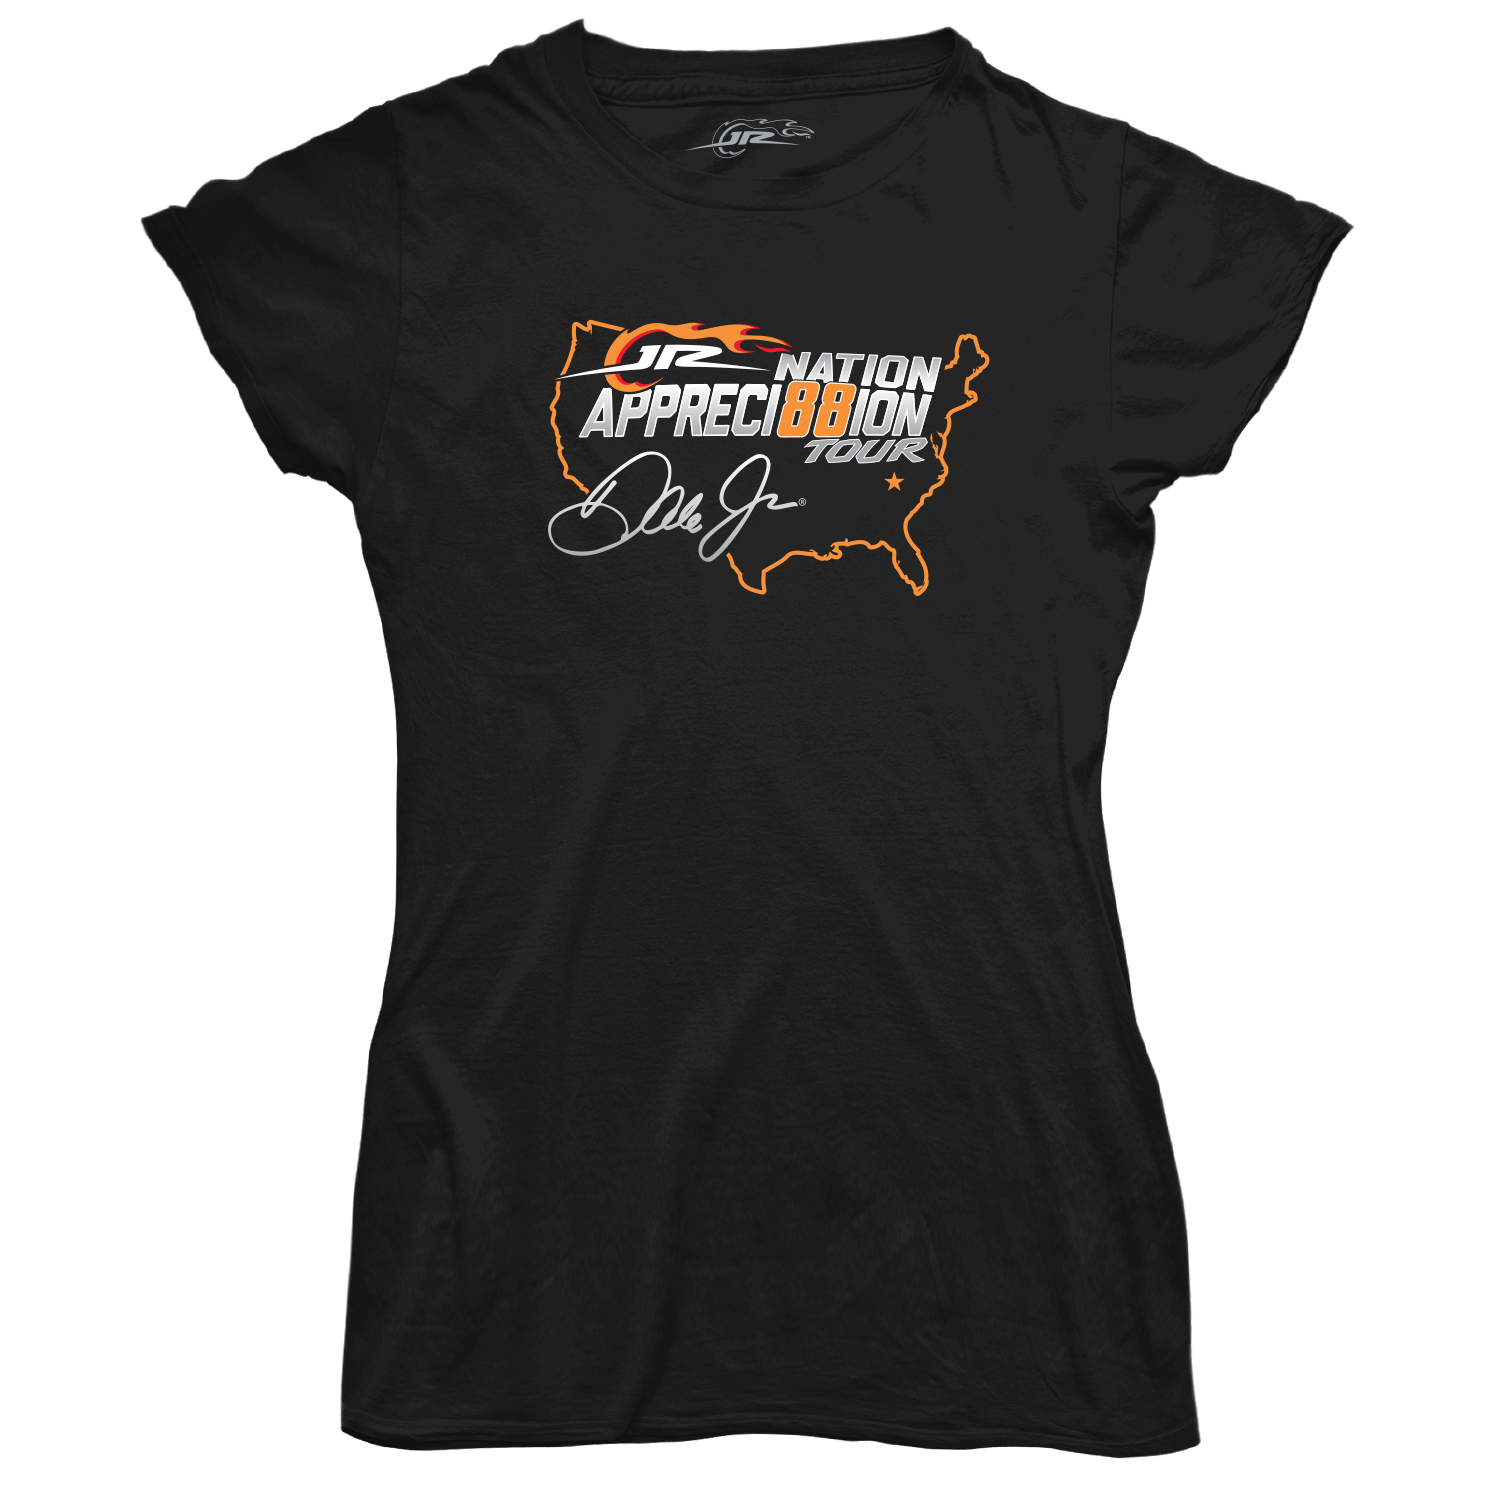 JR Nation Appreci88ion Tour Ladies T-shirt